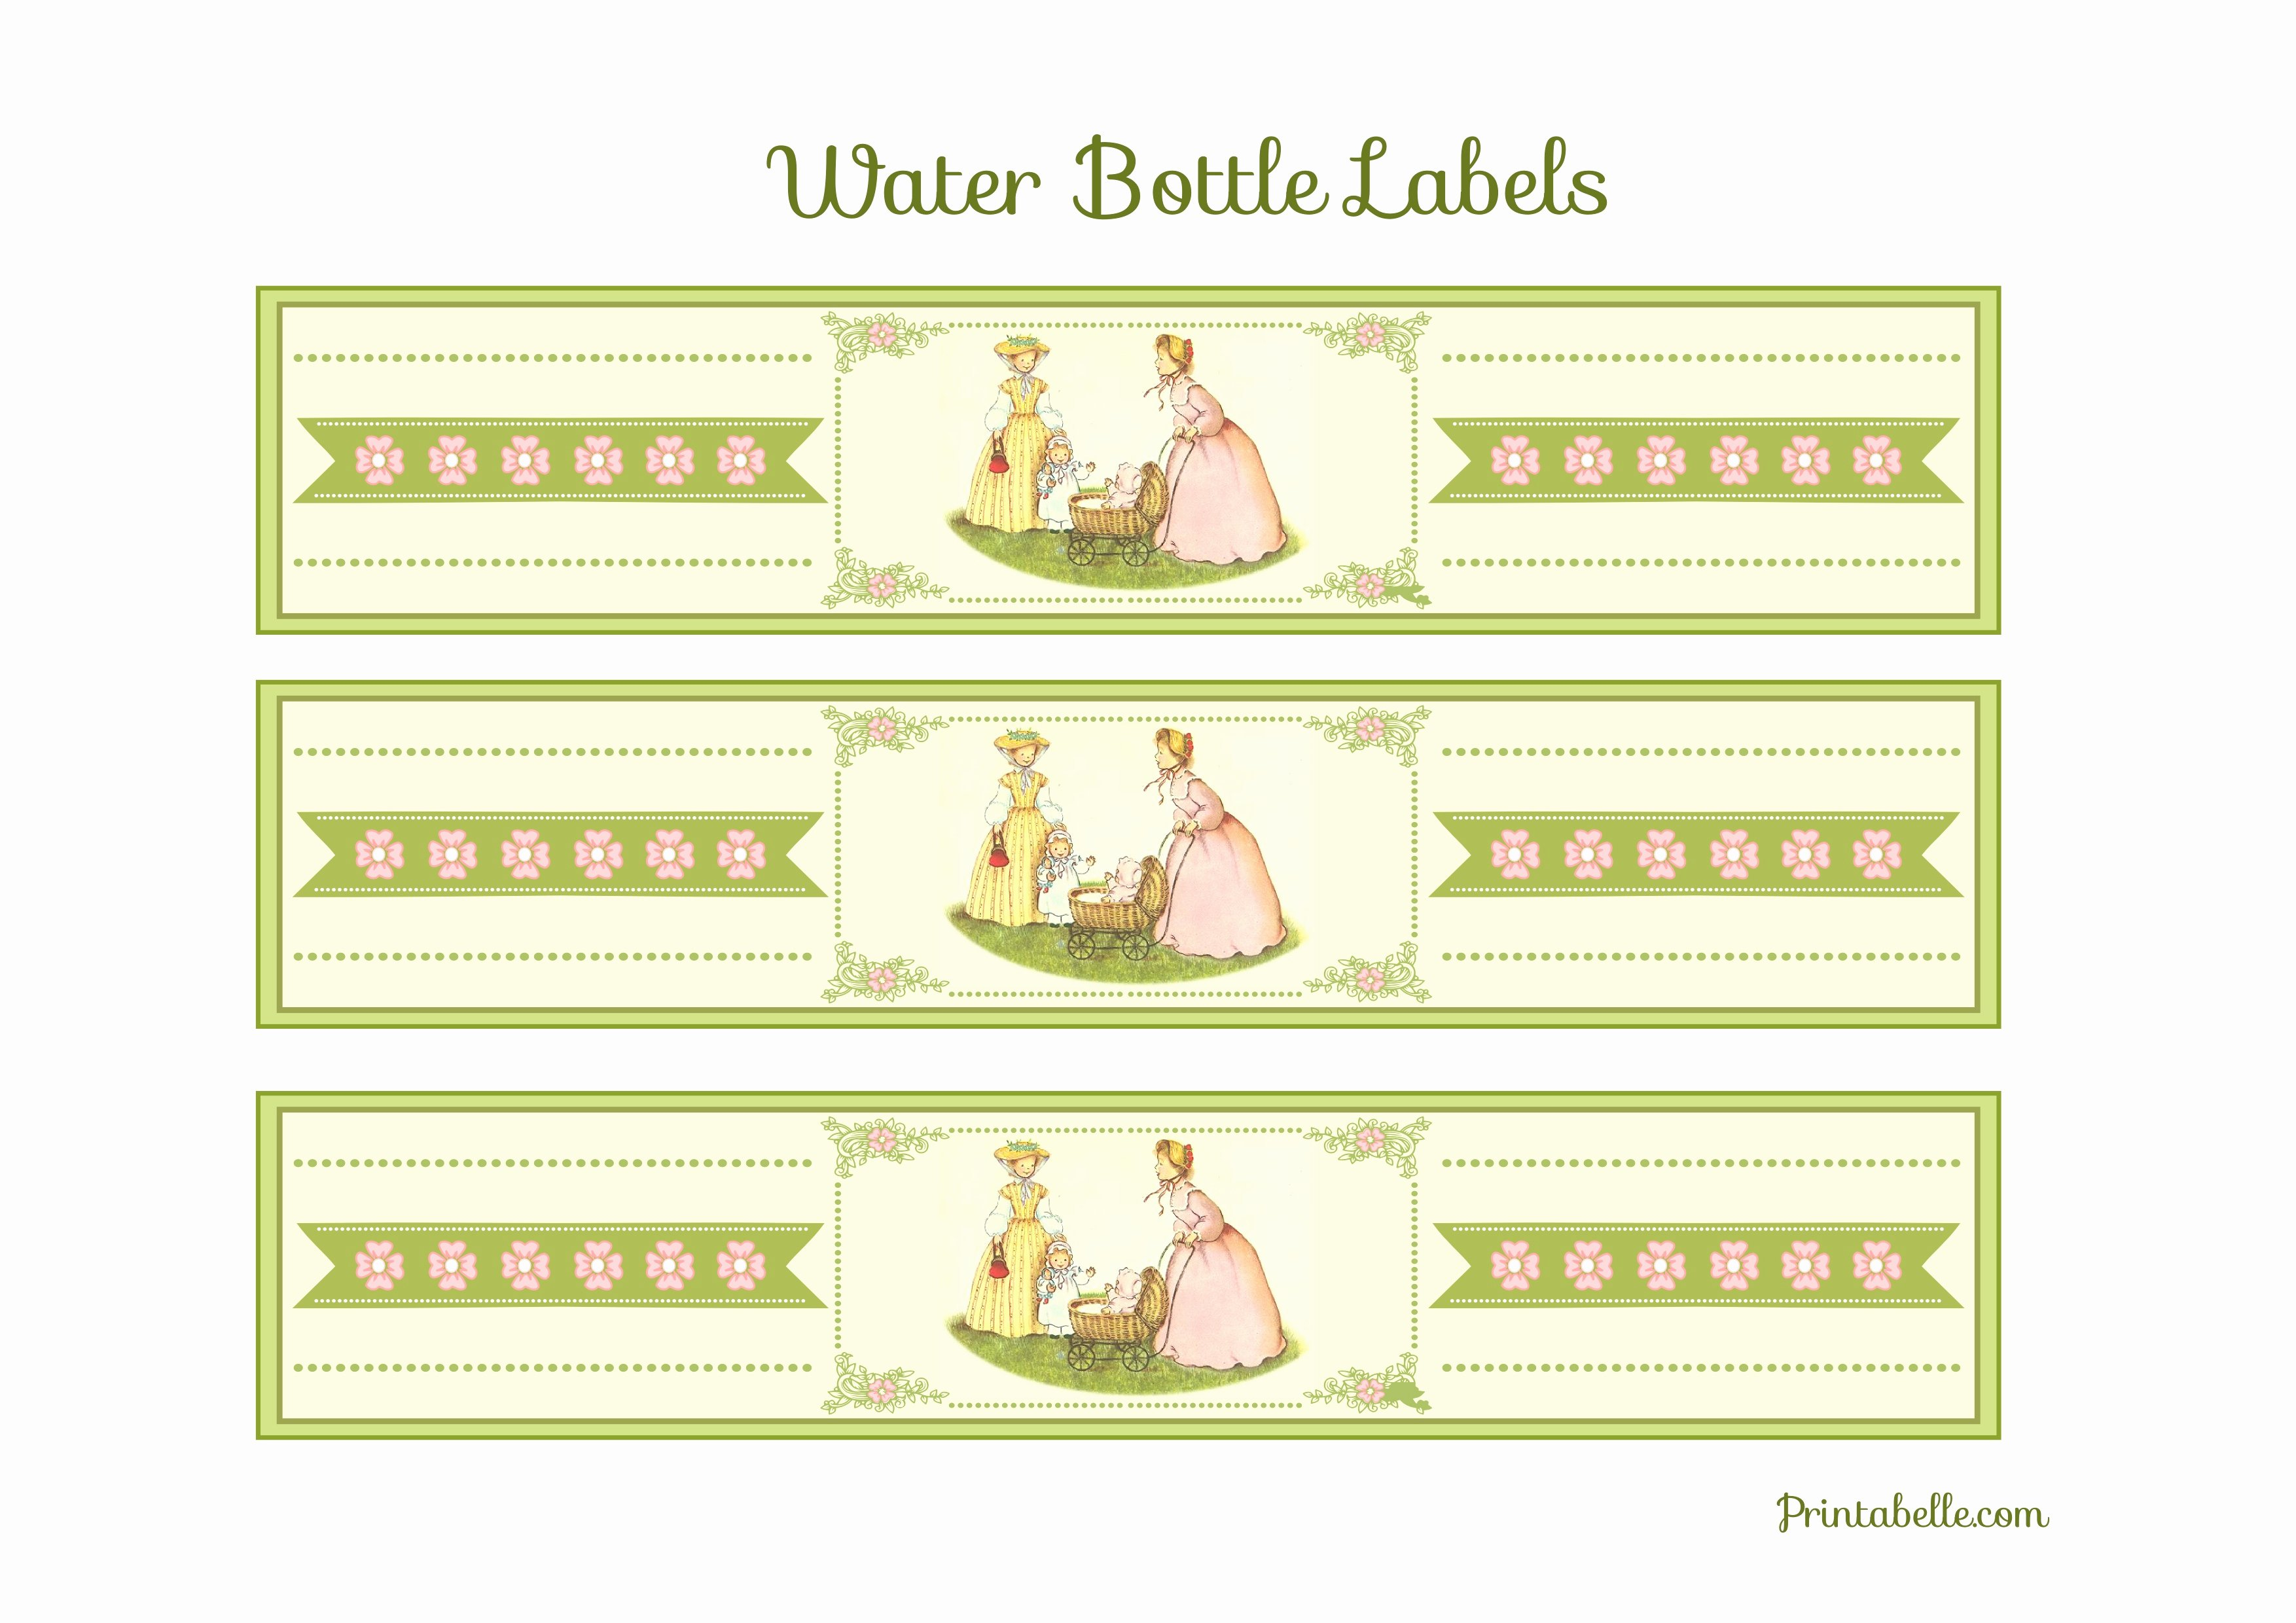 Free Printable Water Bottle Labels for Baby Shower Awesome Free Vintage Baby Shower Printables From Printabelle